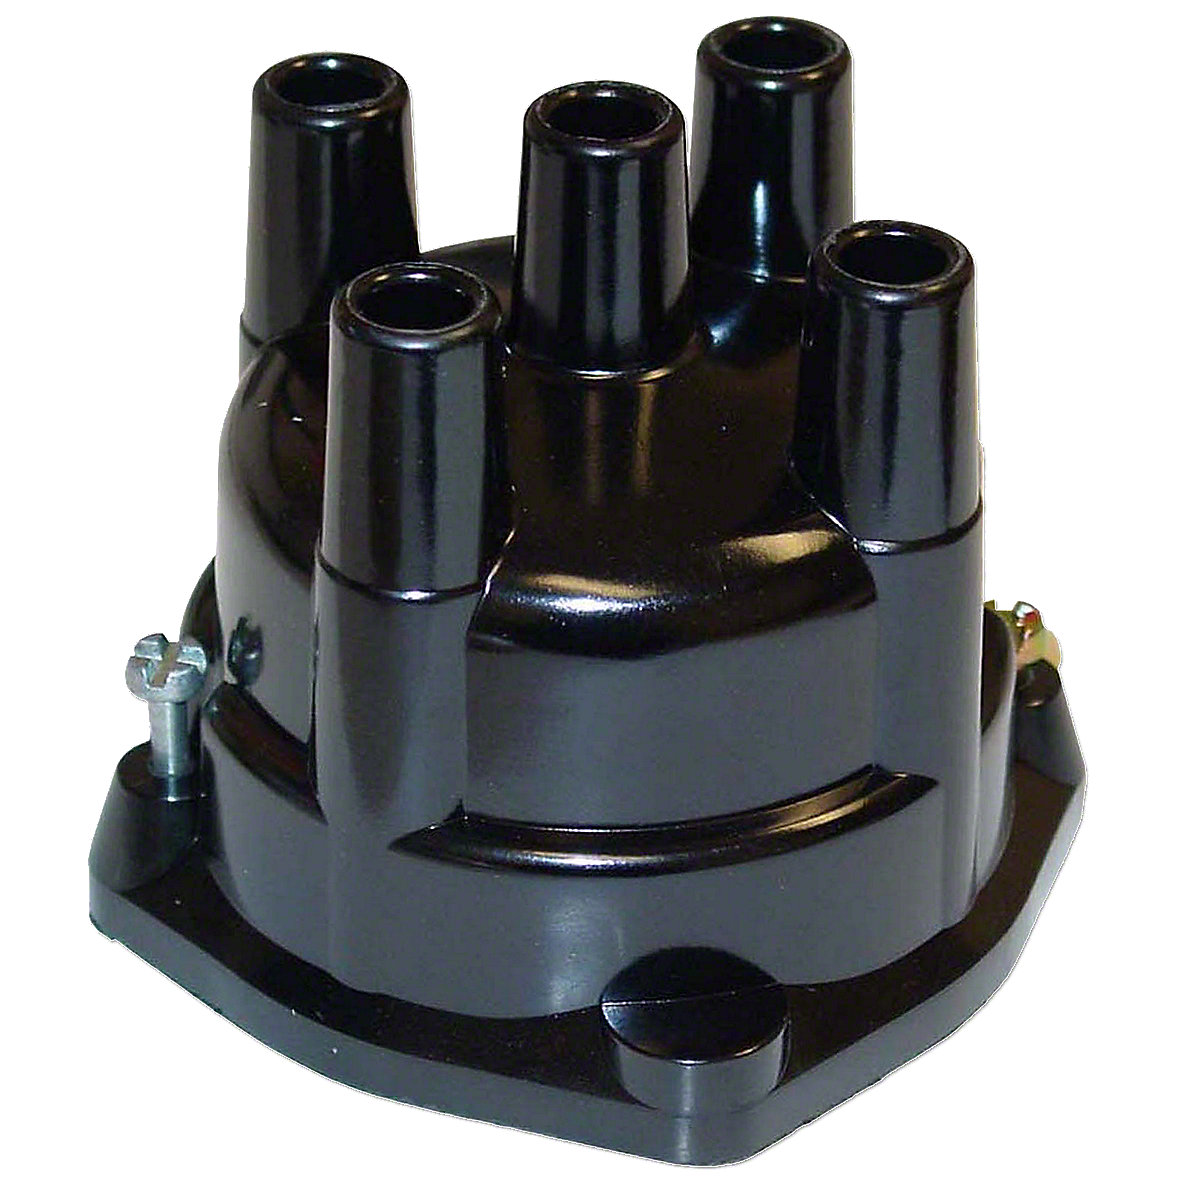 Distributor Cap For Massey Ferguson: TO35, 50, 135, 150, 165, 175, 180.